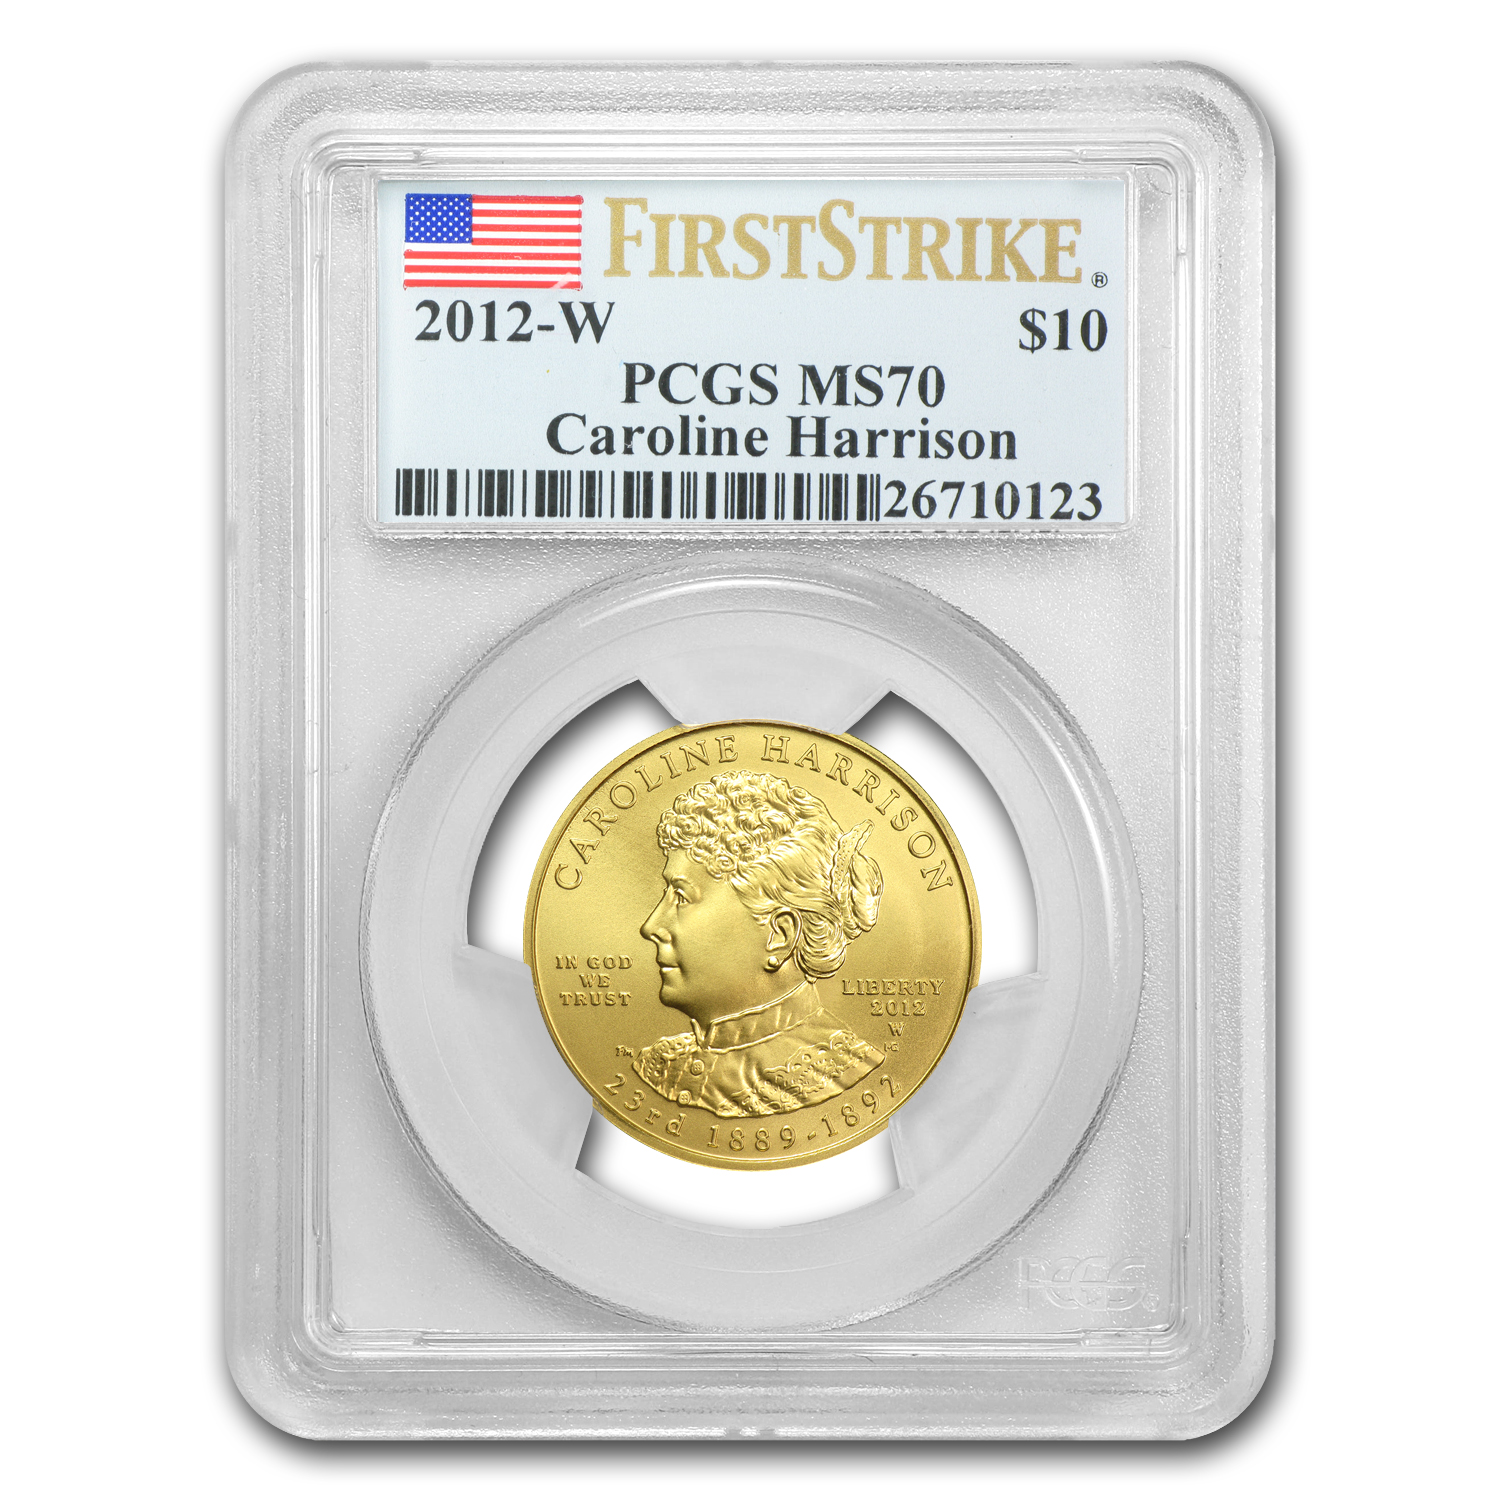 2012-W 1/2 oz Unc Caroline Harrison PCGS MS-70 First Strike